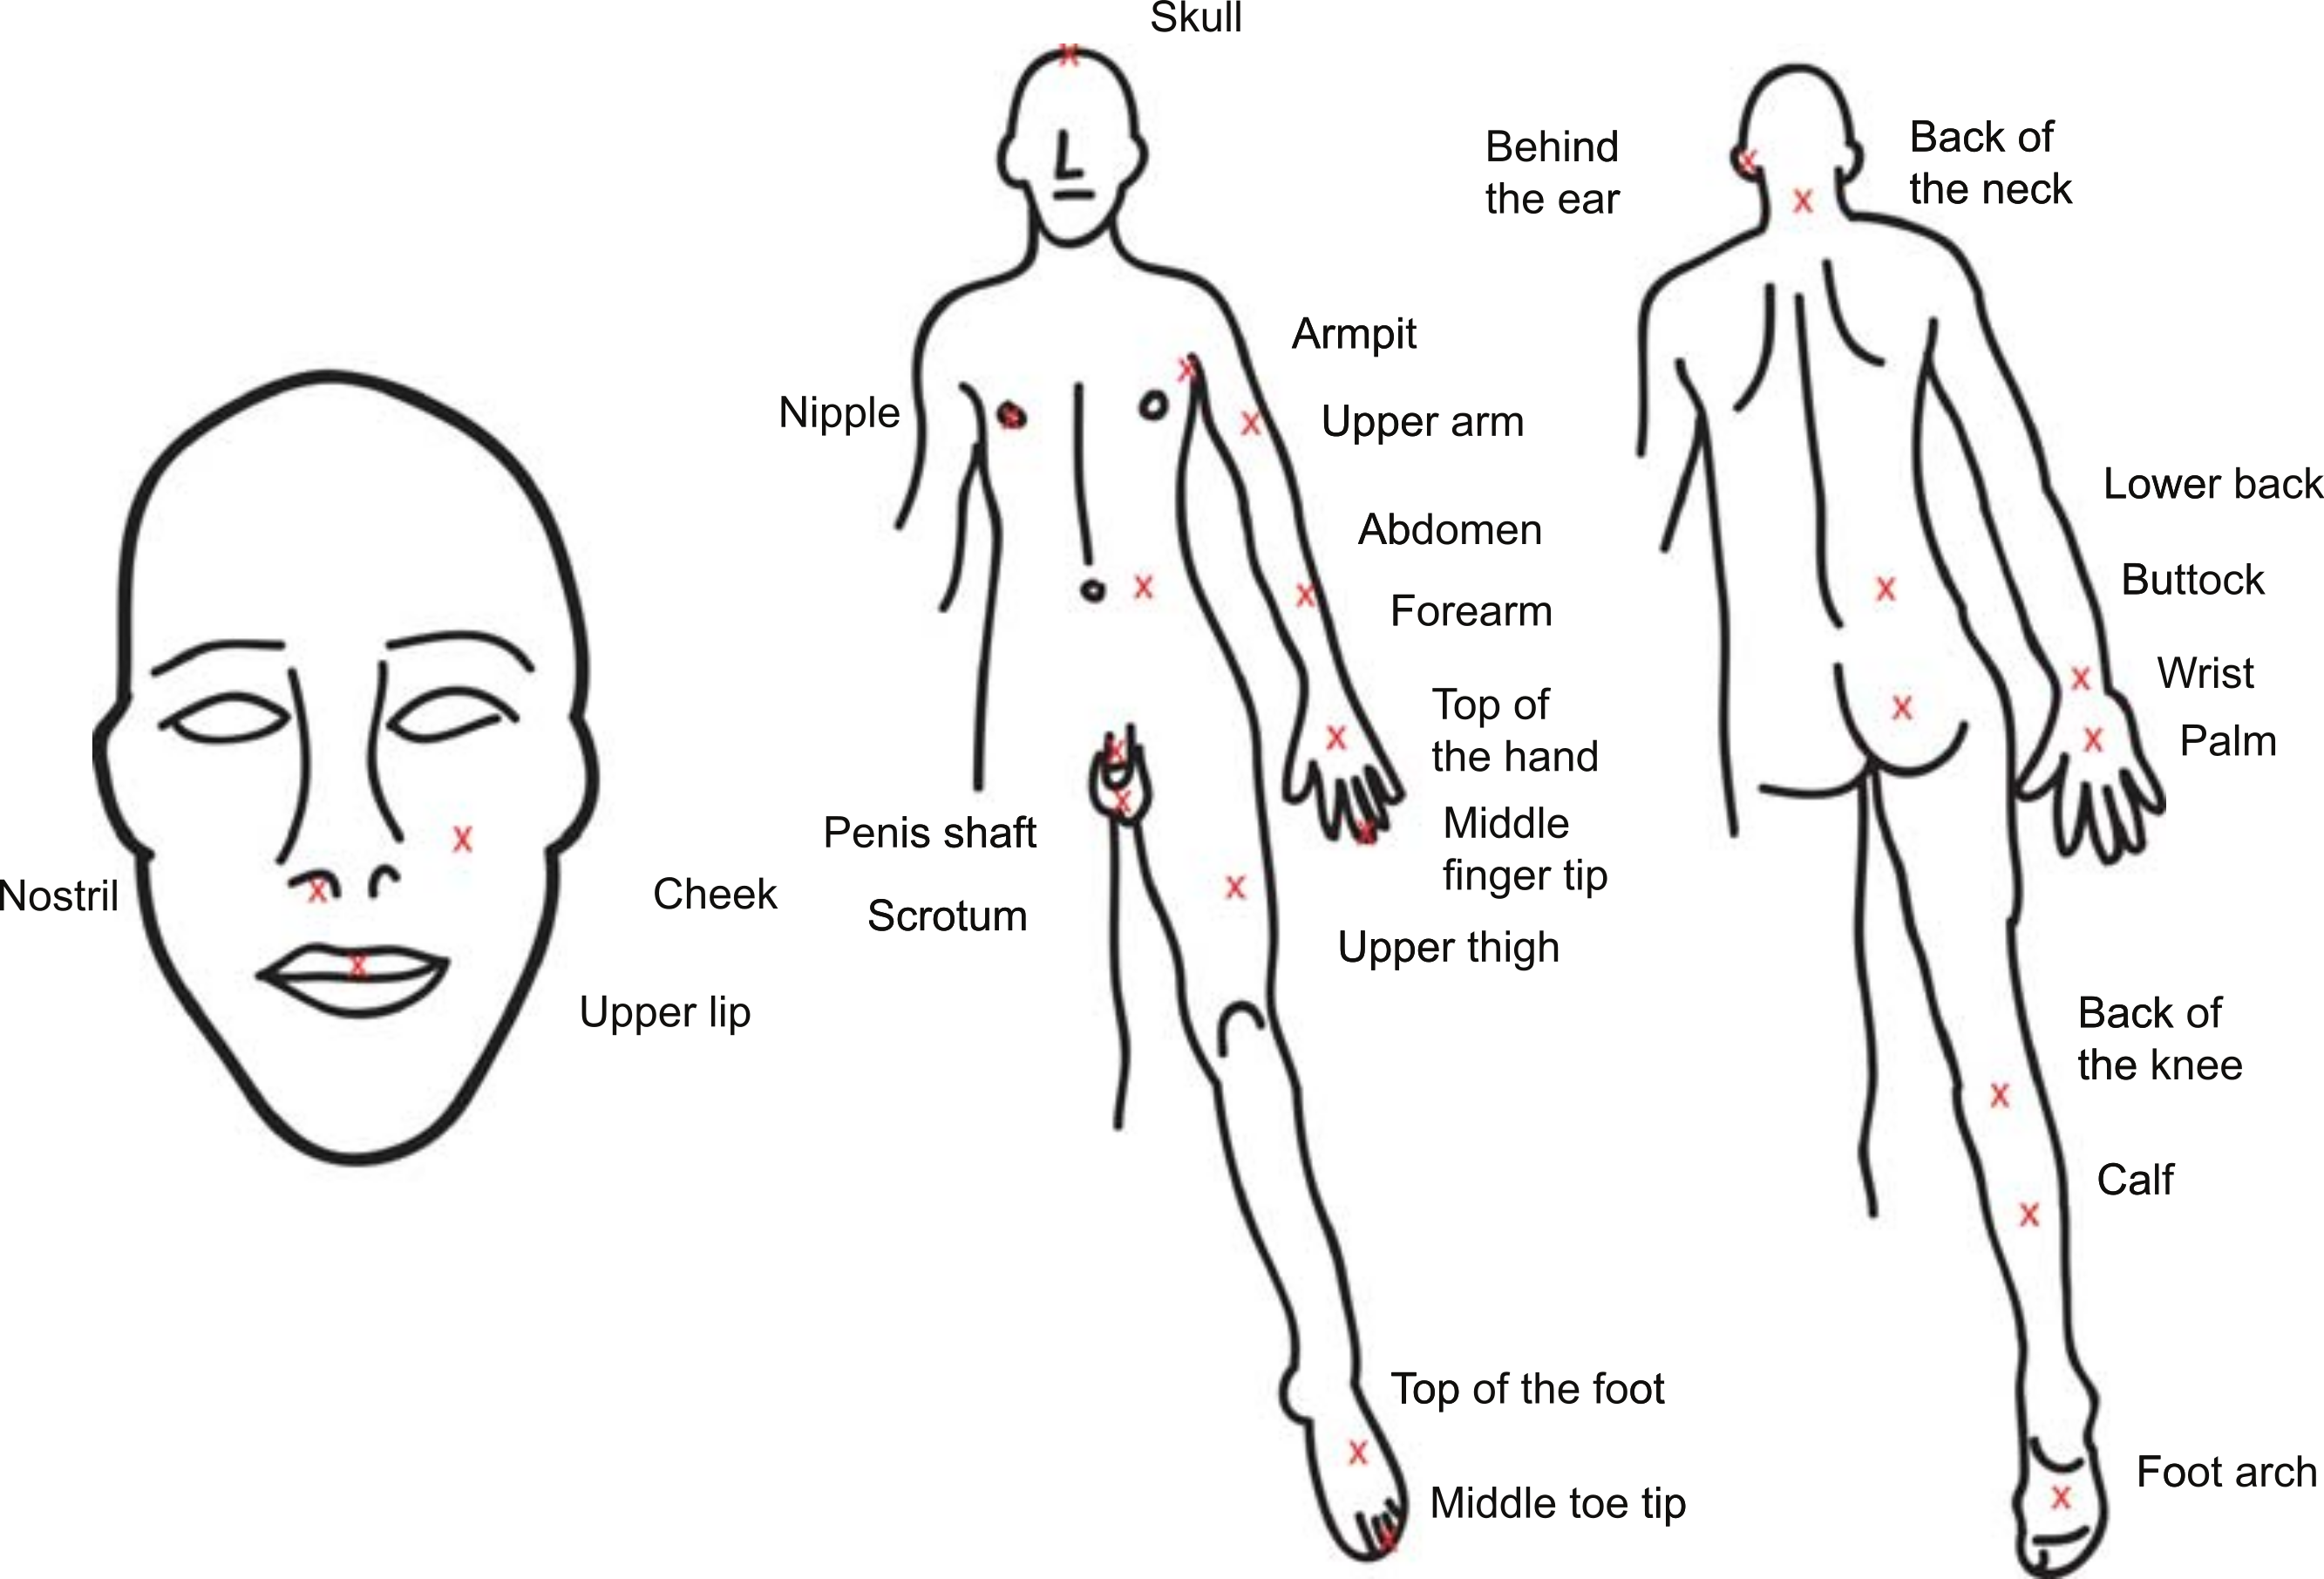 Honey Bee Sting Pain Index By Body Location Peerj